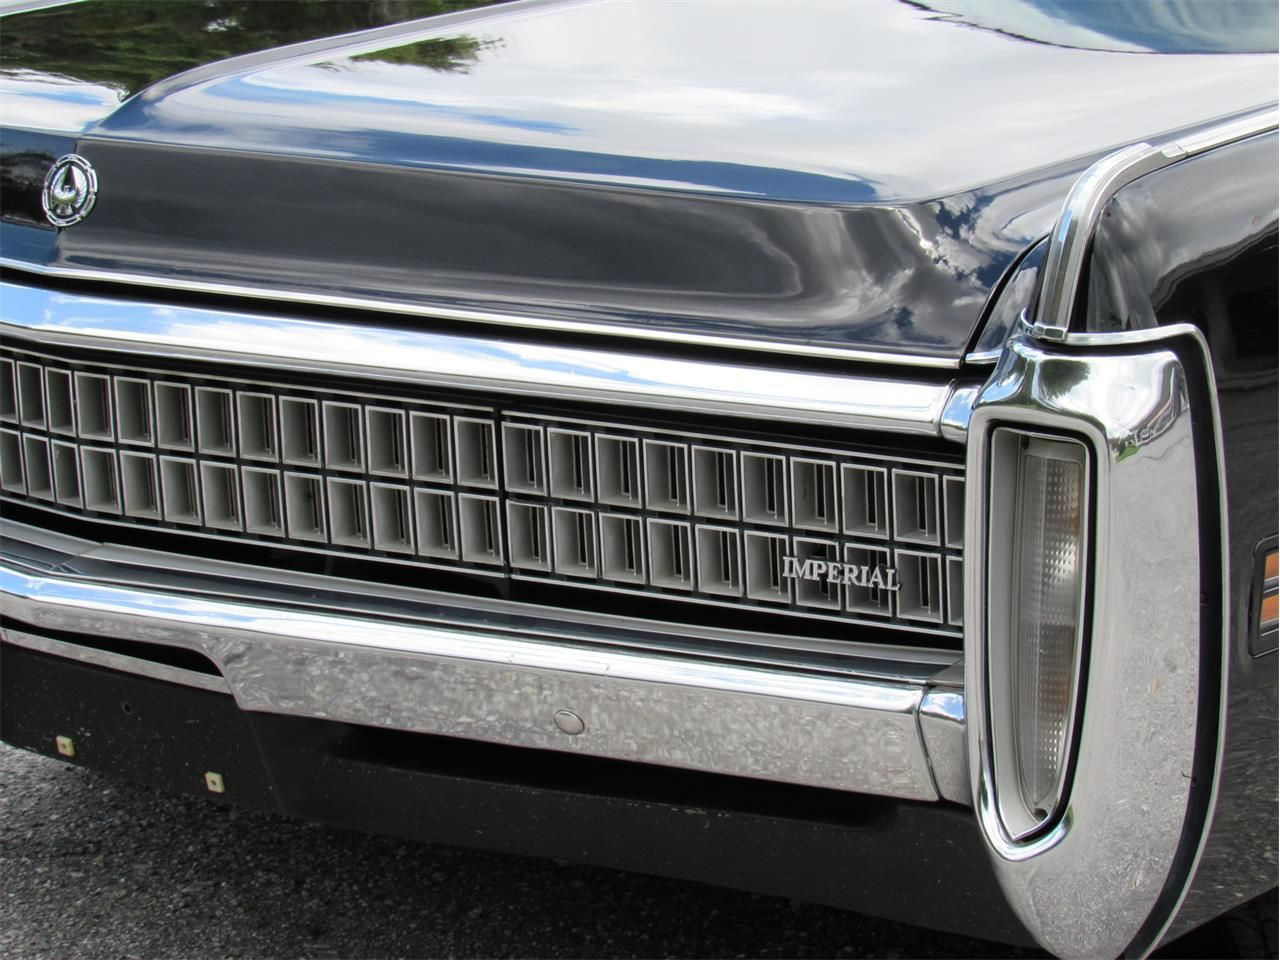 1972 Chrysler Imperial For Sale Classiccars Com Cc 1242670